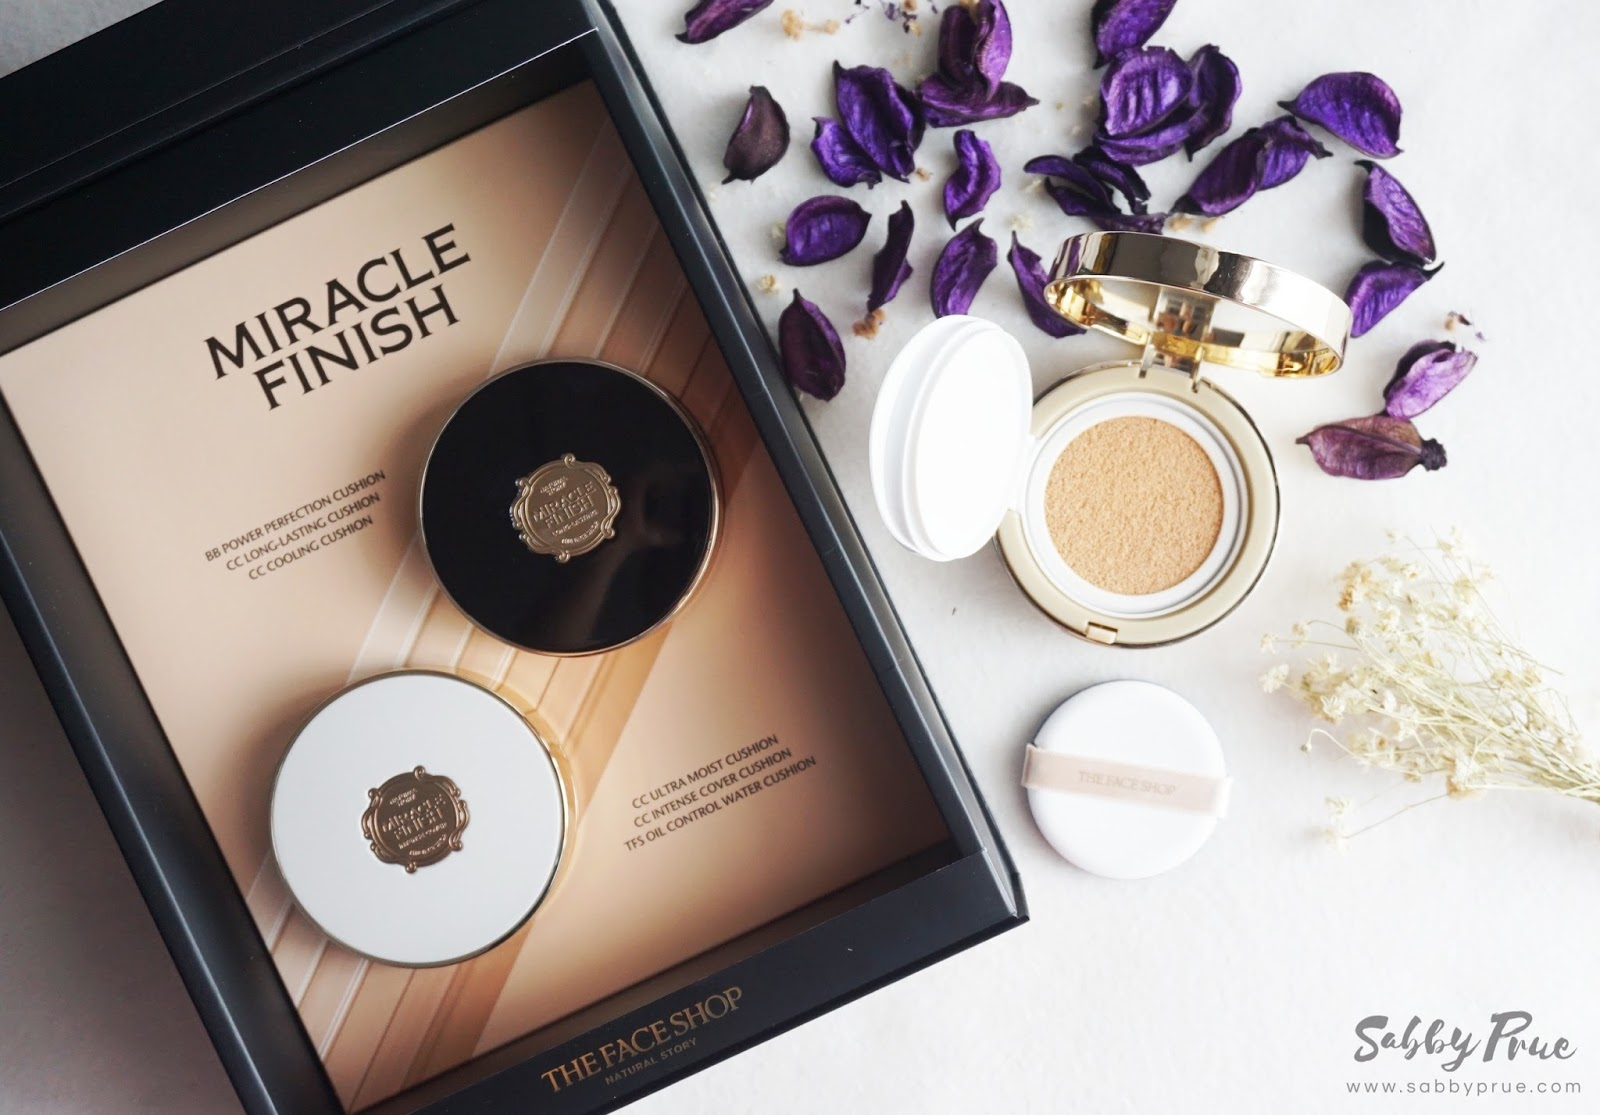 THE FACE SHOP Miracle Finish Cushion in 6 Variants - ♥ Sabby Prue ...